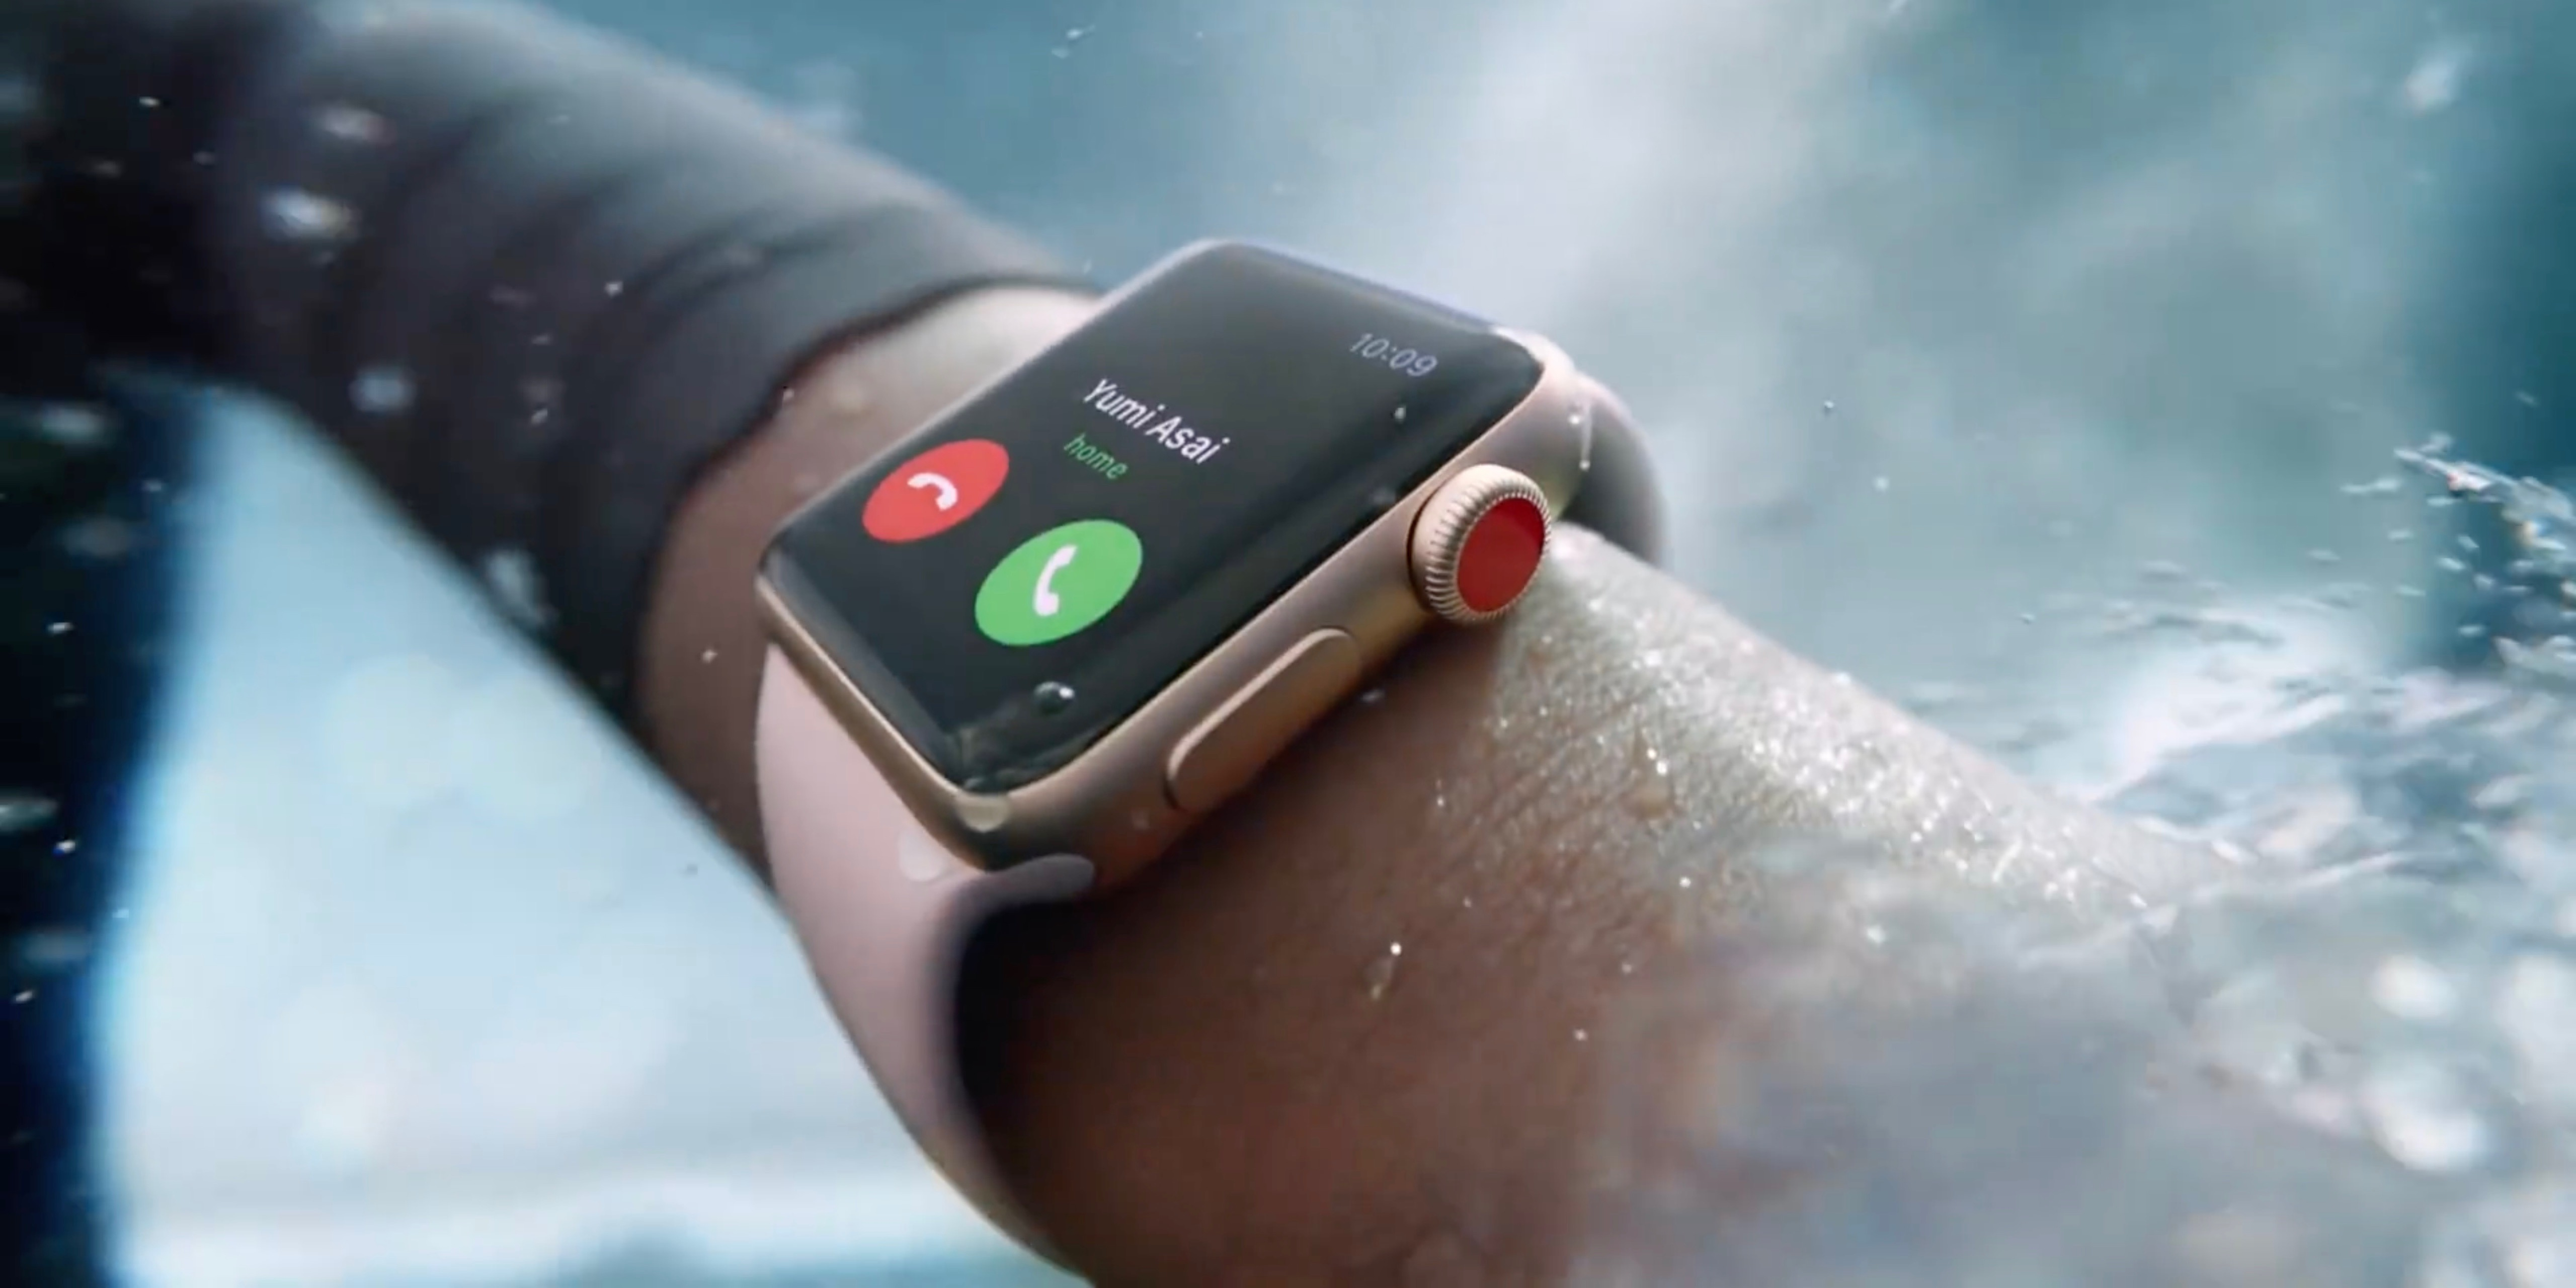 Apple Watch adoption climbs 56% year over year to become global favorite, Fitbit takes sharp dive